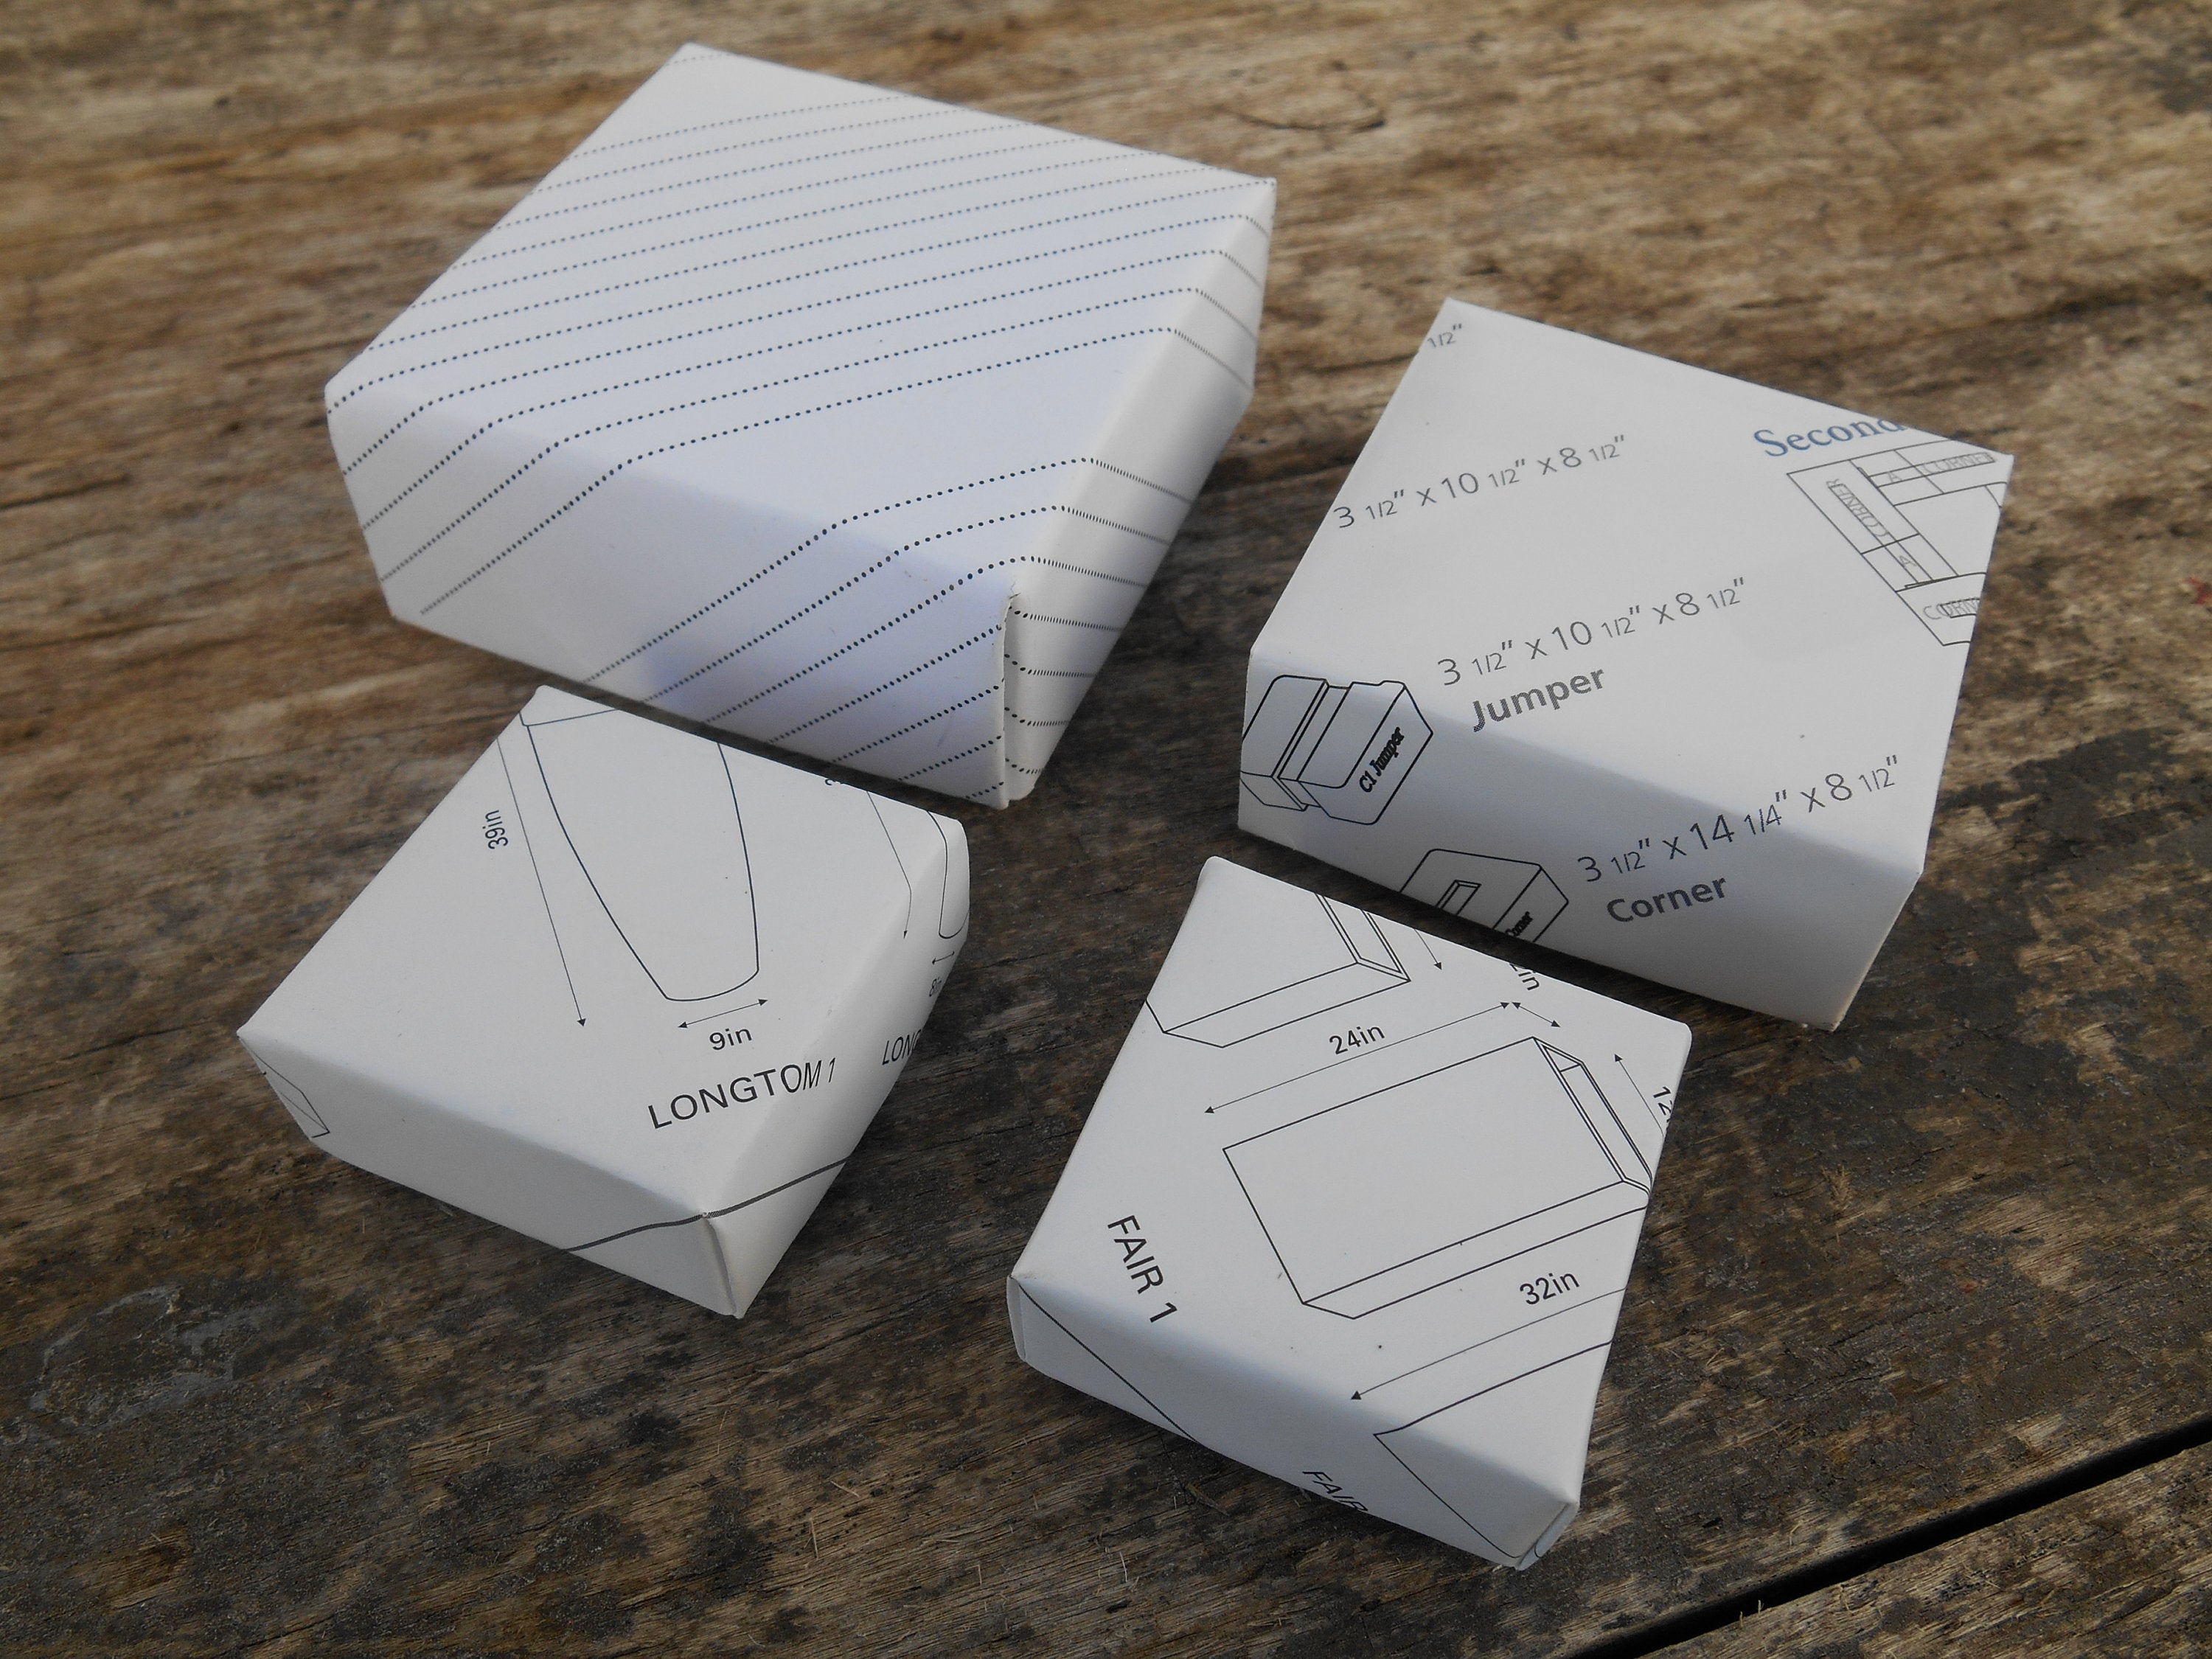 Origami Gift Boxes Lot Of Four Handmade Origami Gift Boxes 1 Medium 1 Medium Small And 2 Small Black And White Catalog Pages Jewelry Gift Boxes